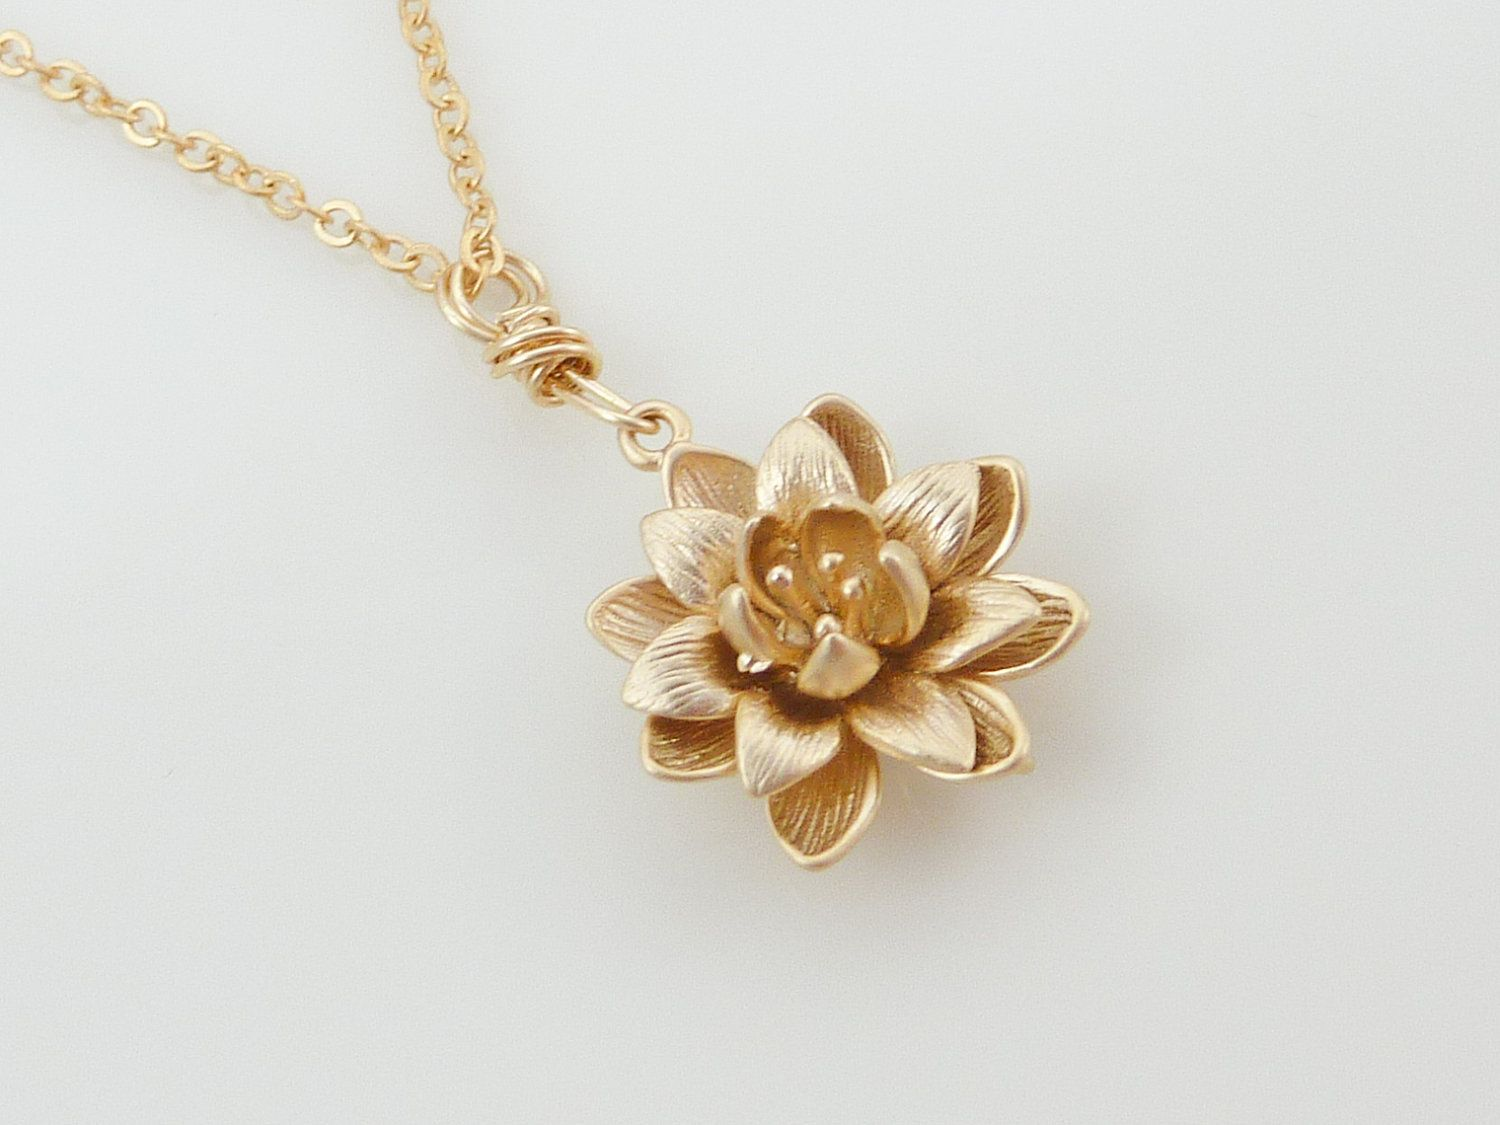 Gold Lotus Jewllery Jewels Pinterest Gold And Jewel